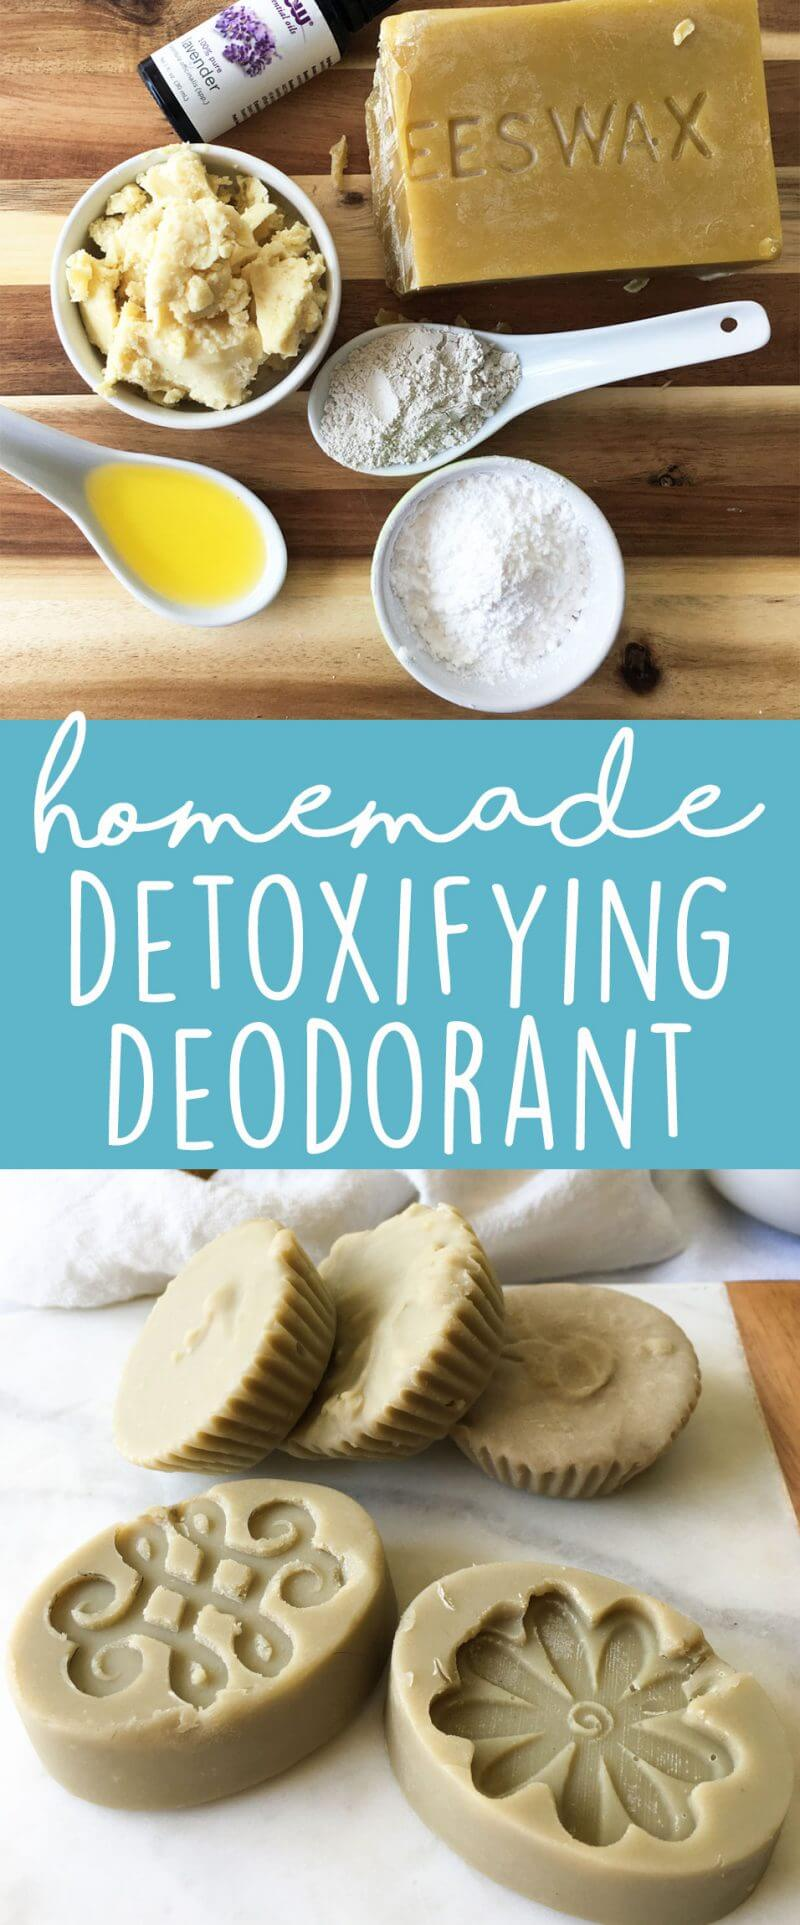 DIY Bentonite Clay Deodorant Bars - make your own deodorant with all-natural, non-toxic ingredients. This recipe is coconut oil-free and baking soda-free. (Homemade Bentonite Clay Deodorant) | karissasvegankitchen.com